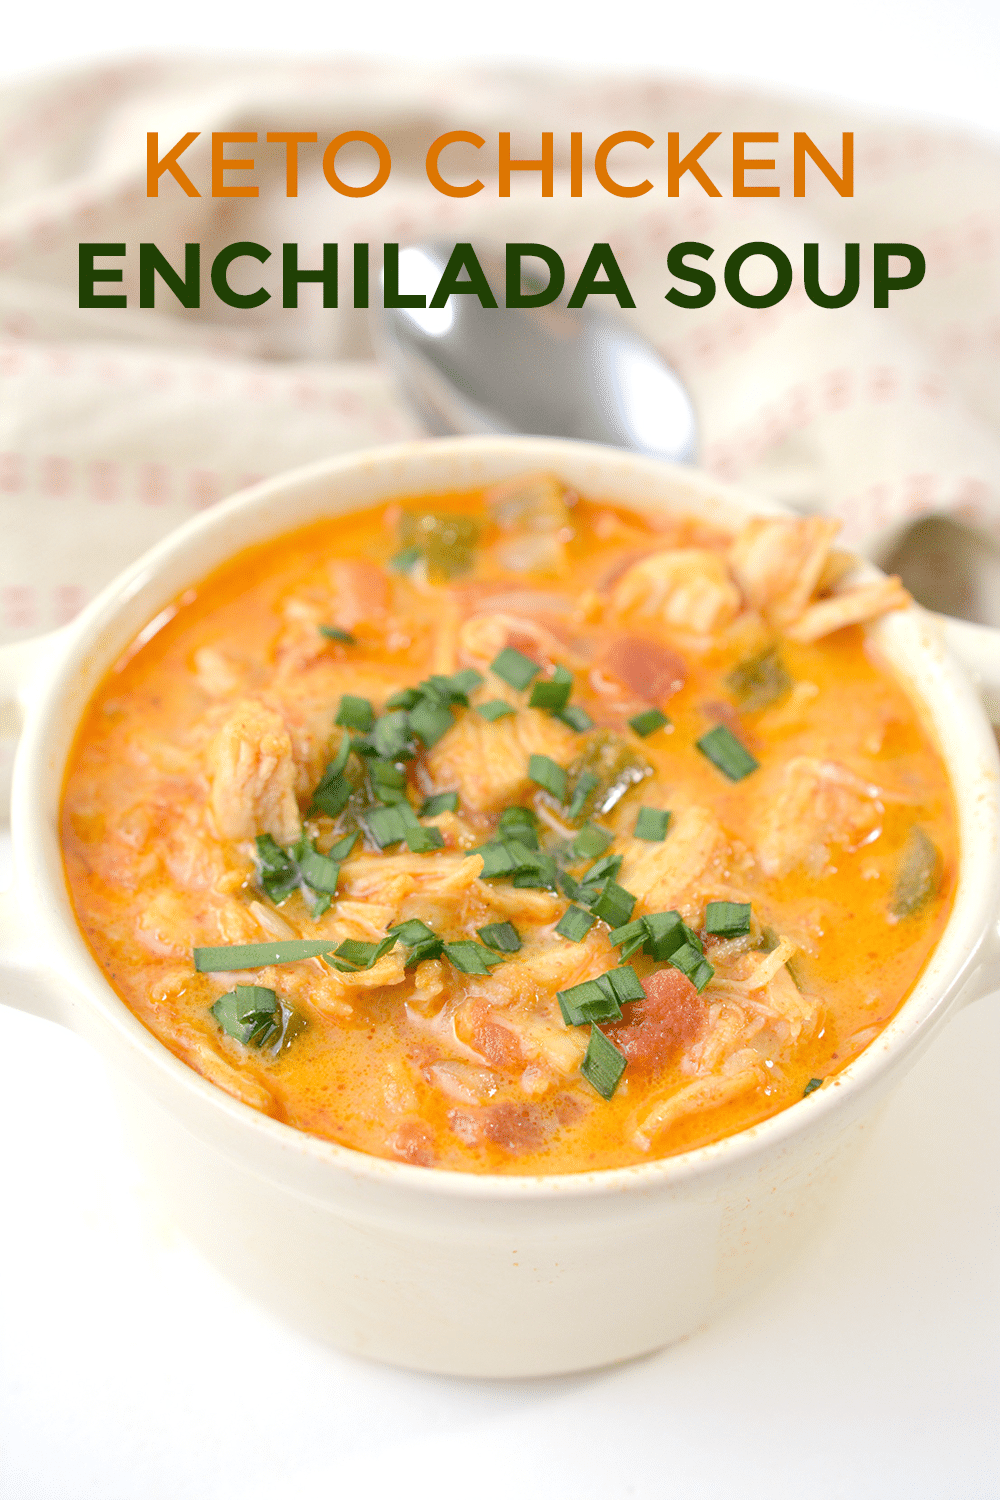 chicken enchilada soup in a white bowl on a white table with a spoon and cloth in the background with title text reading Keto Chicken Enchilada Soup